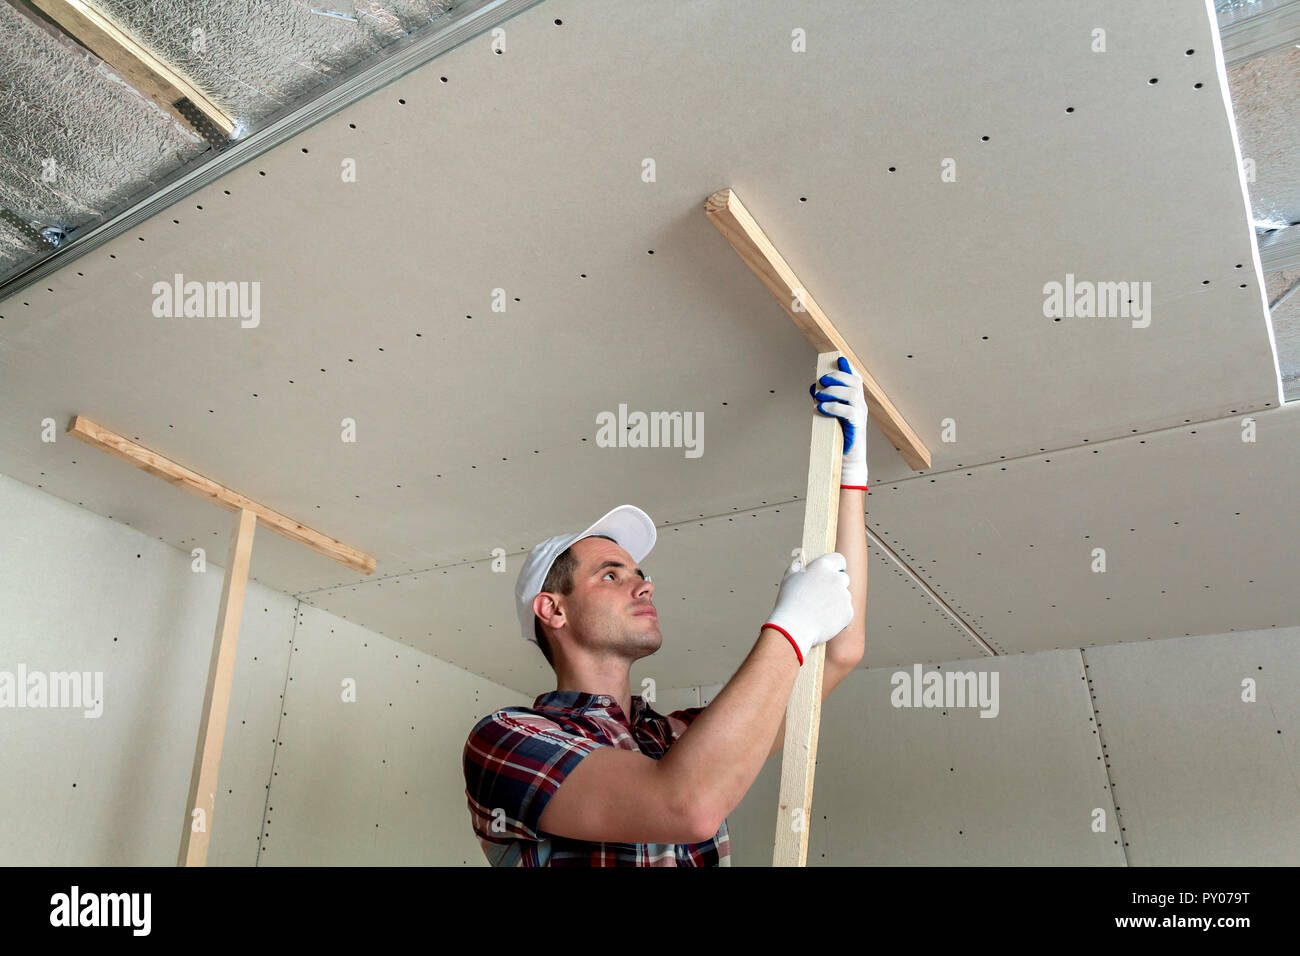 Young Worker In Protection Work Gloves Fixing Wooden Holders